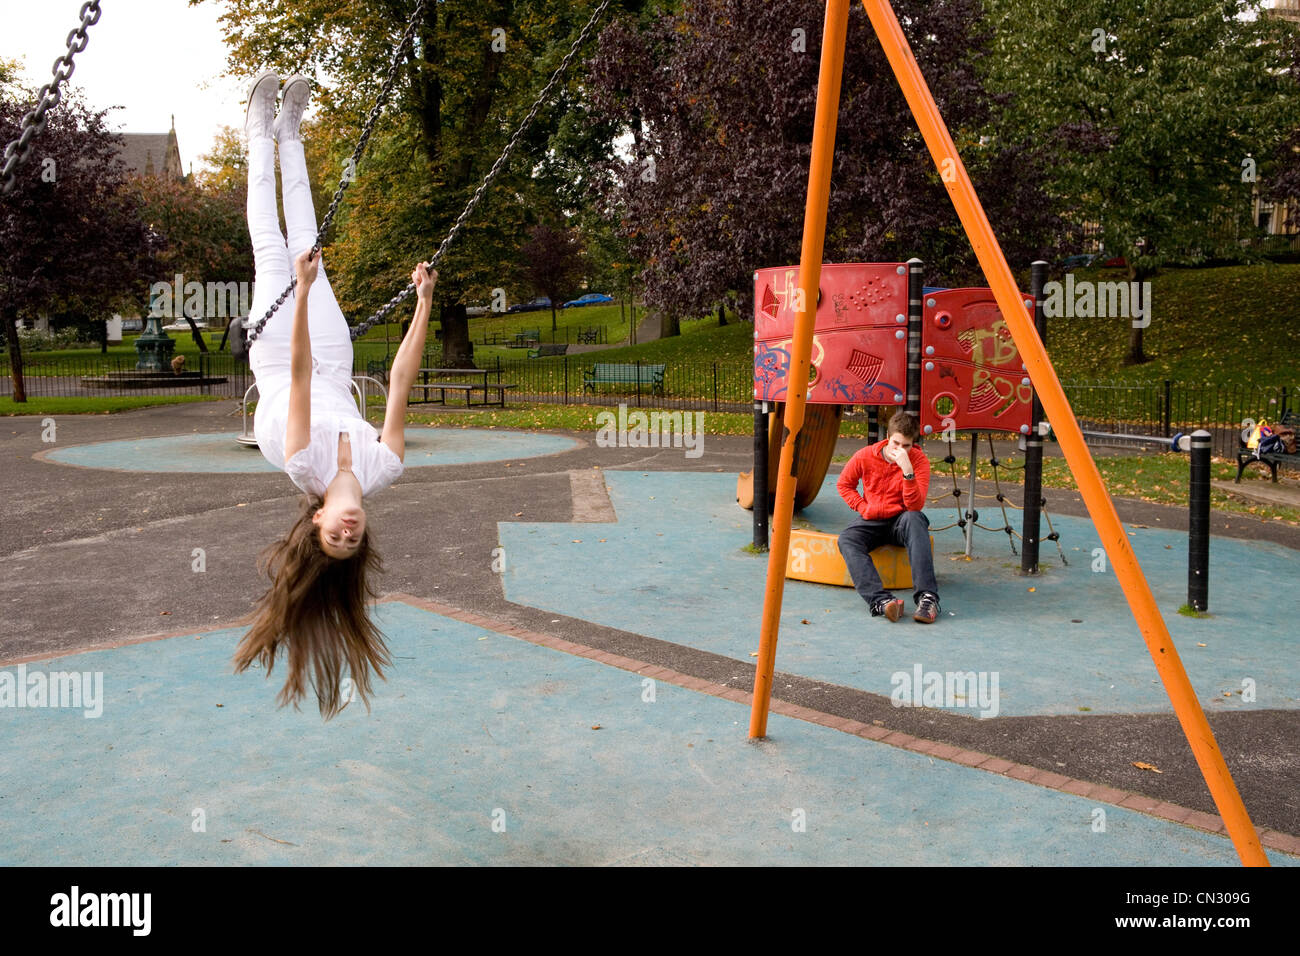 Teenage girl on swing in playground, upside down - Stock Image